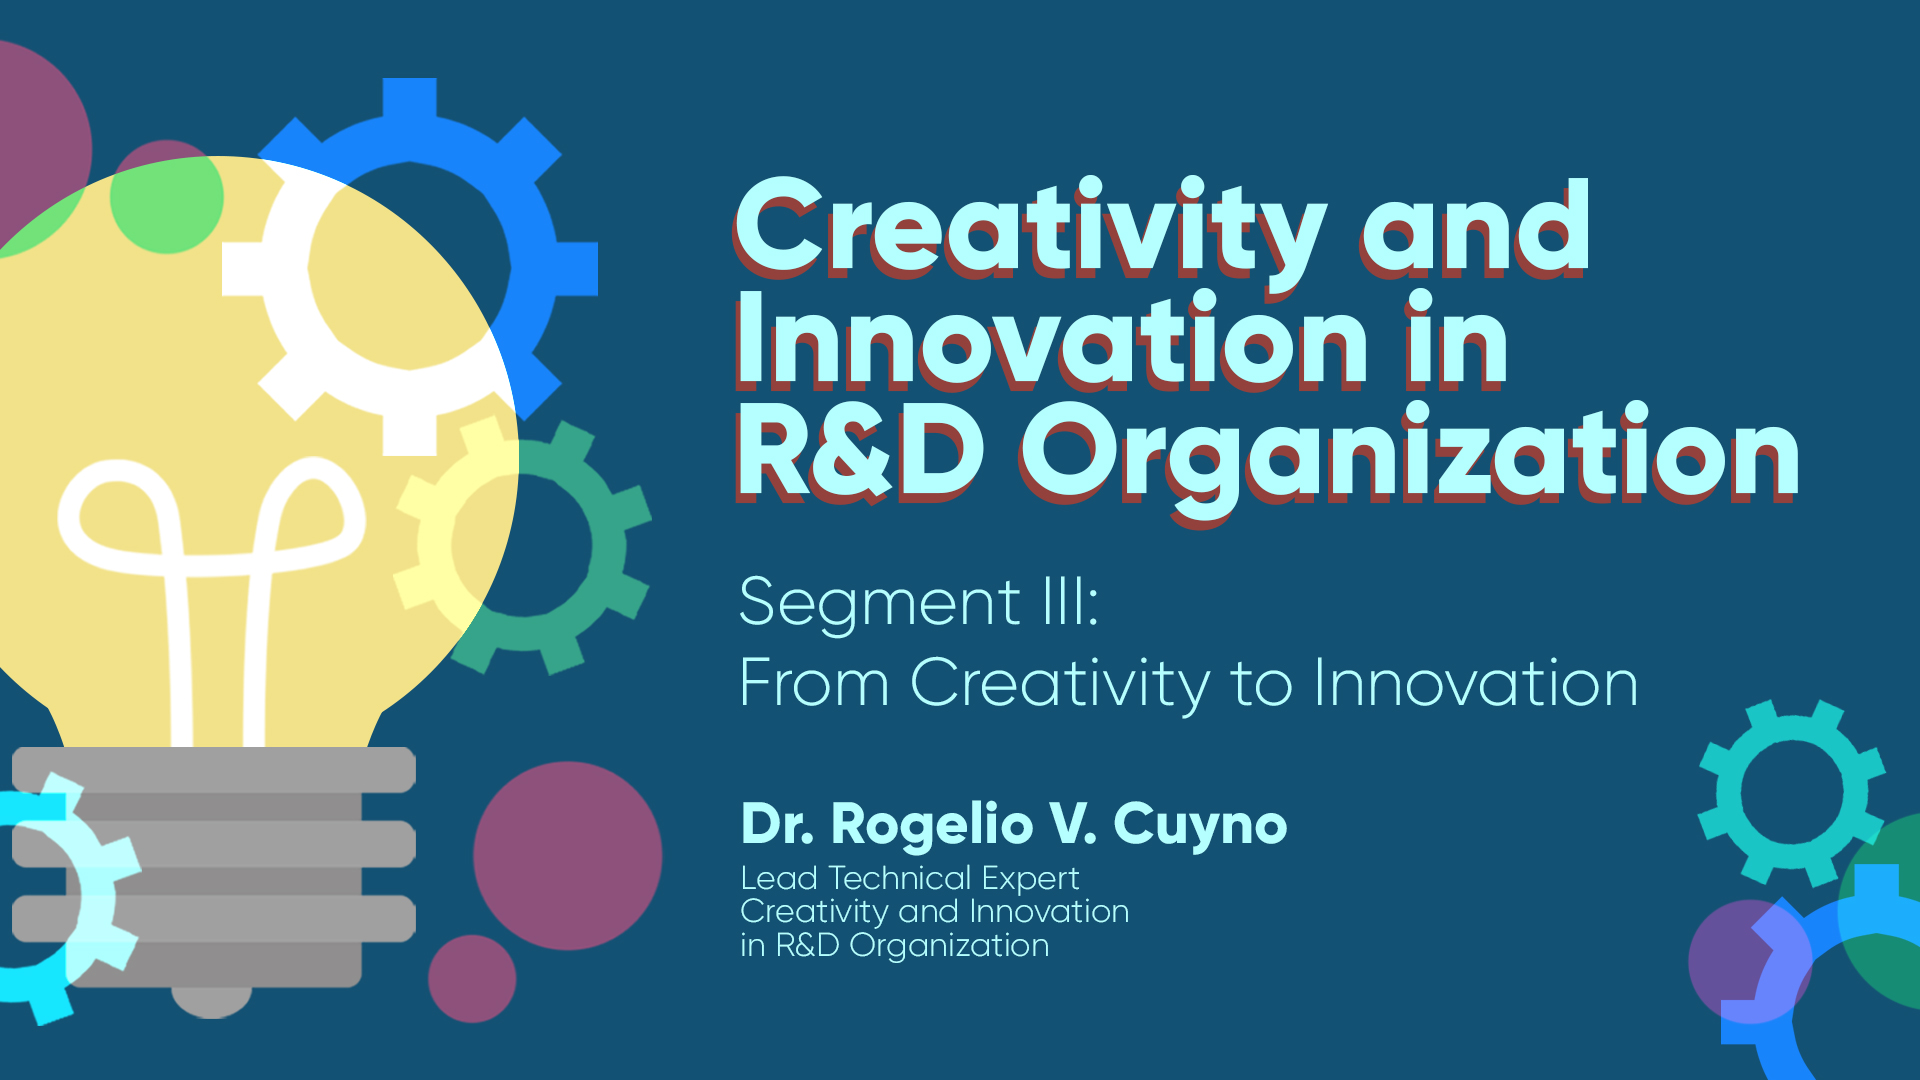 Creativity and Innovation in R&D Organization - Segment III: From Creativity to Innovation | Dr. Rogelio V. Cuyno